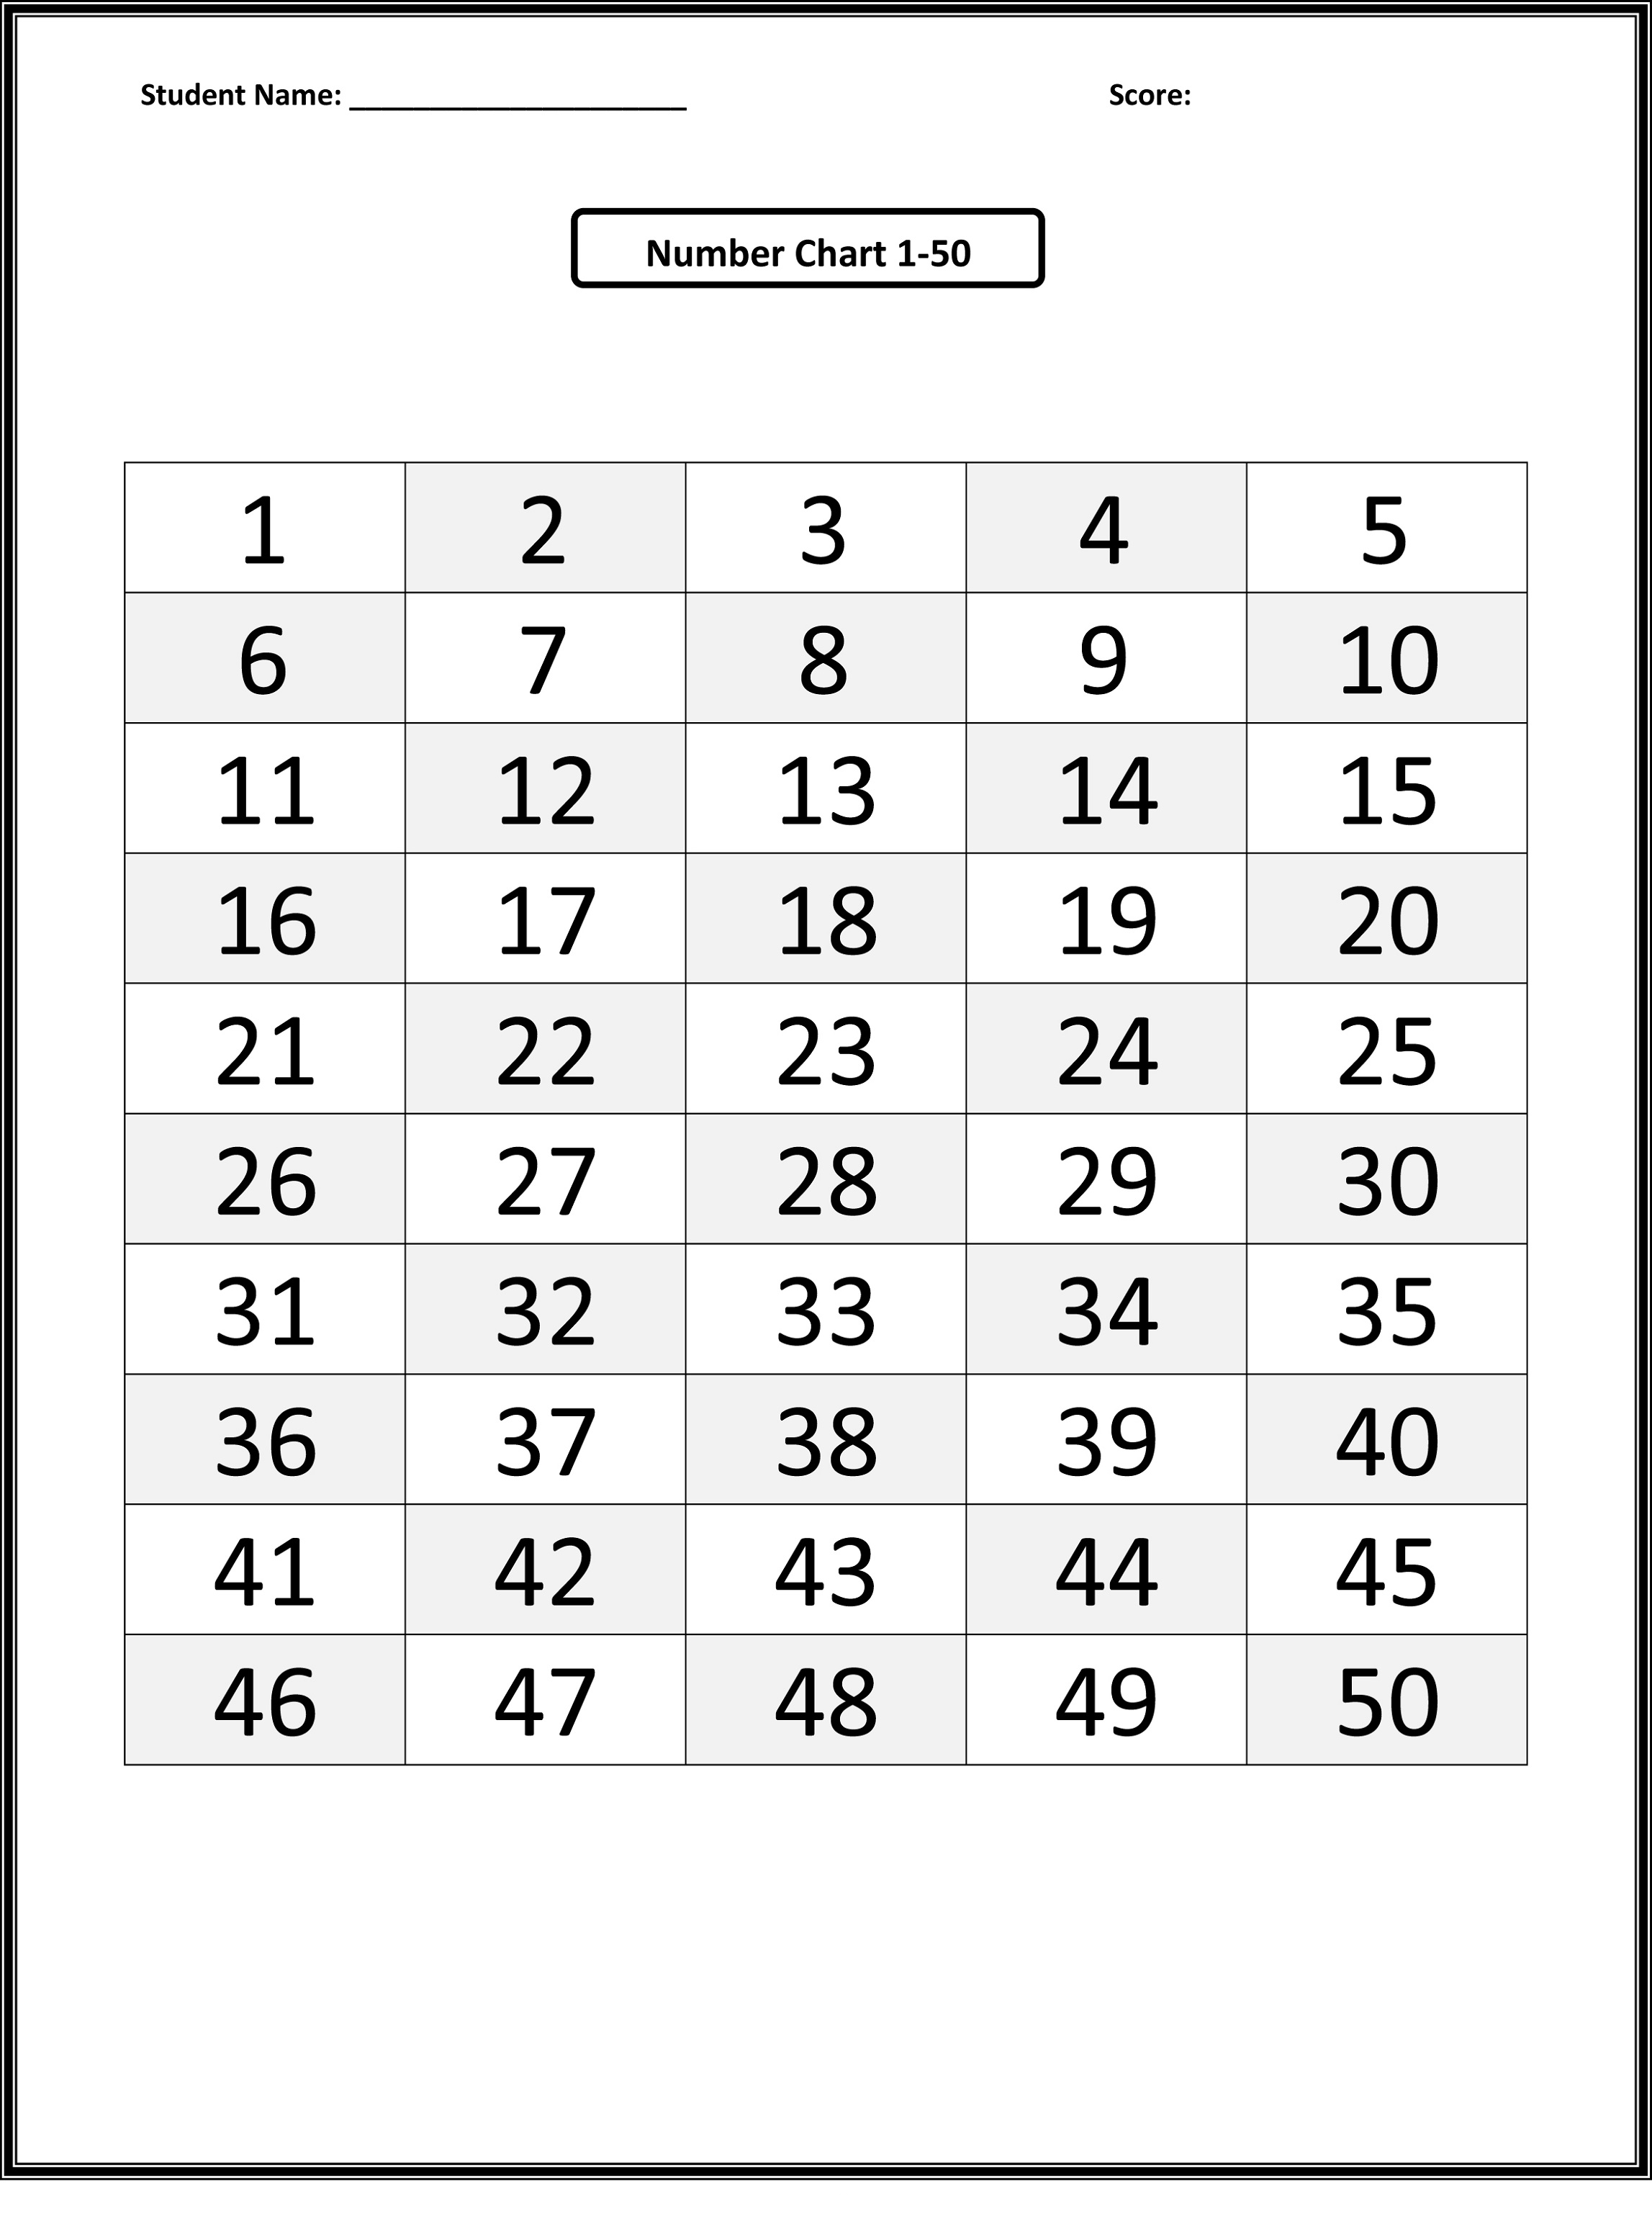 photo relating to Number Grid Printable known as 50 Selection Chart Printable Sport Shelter